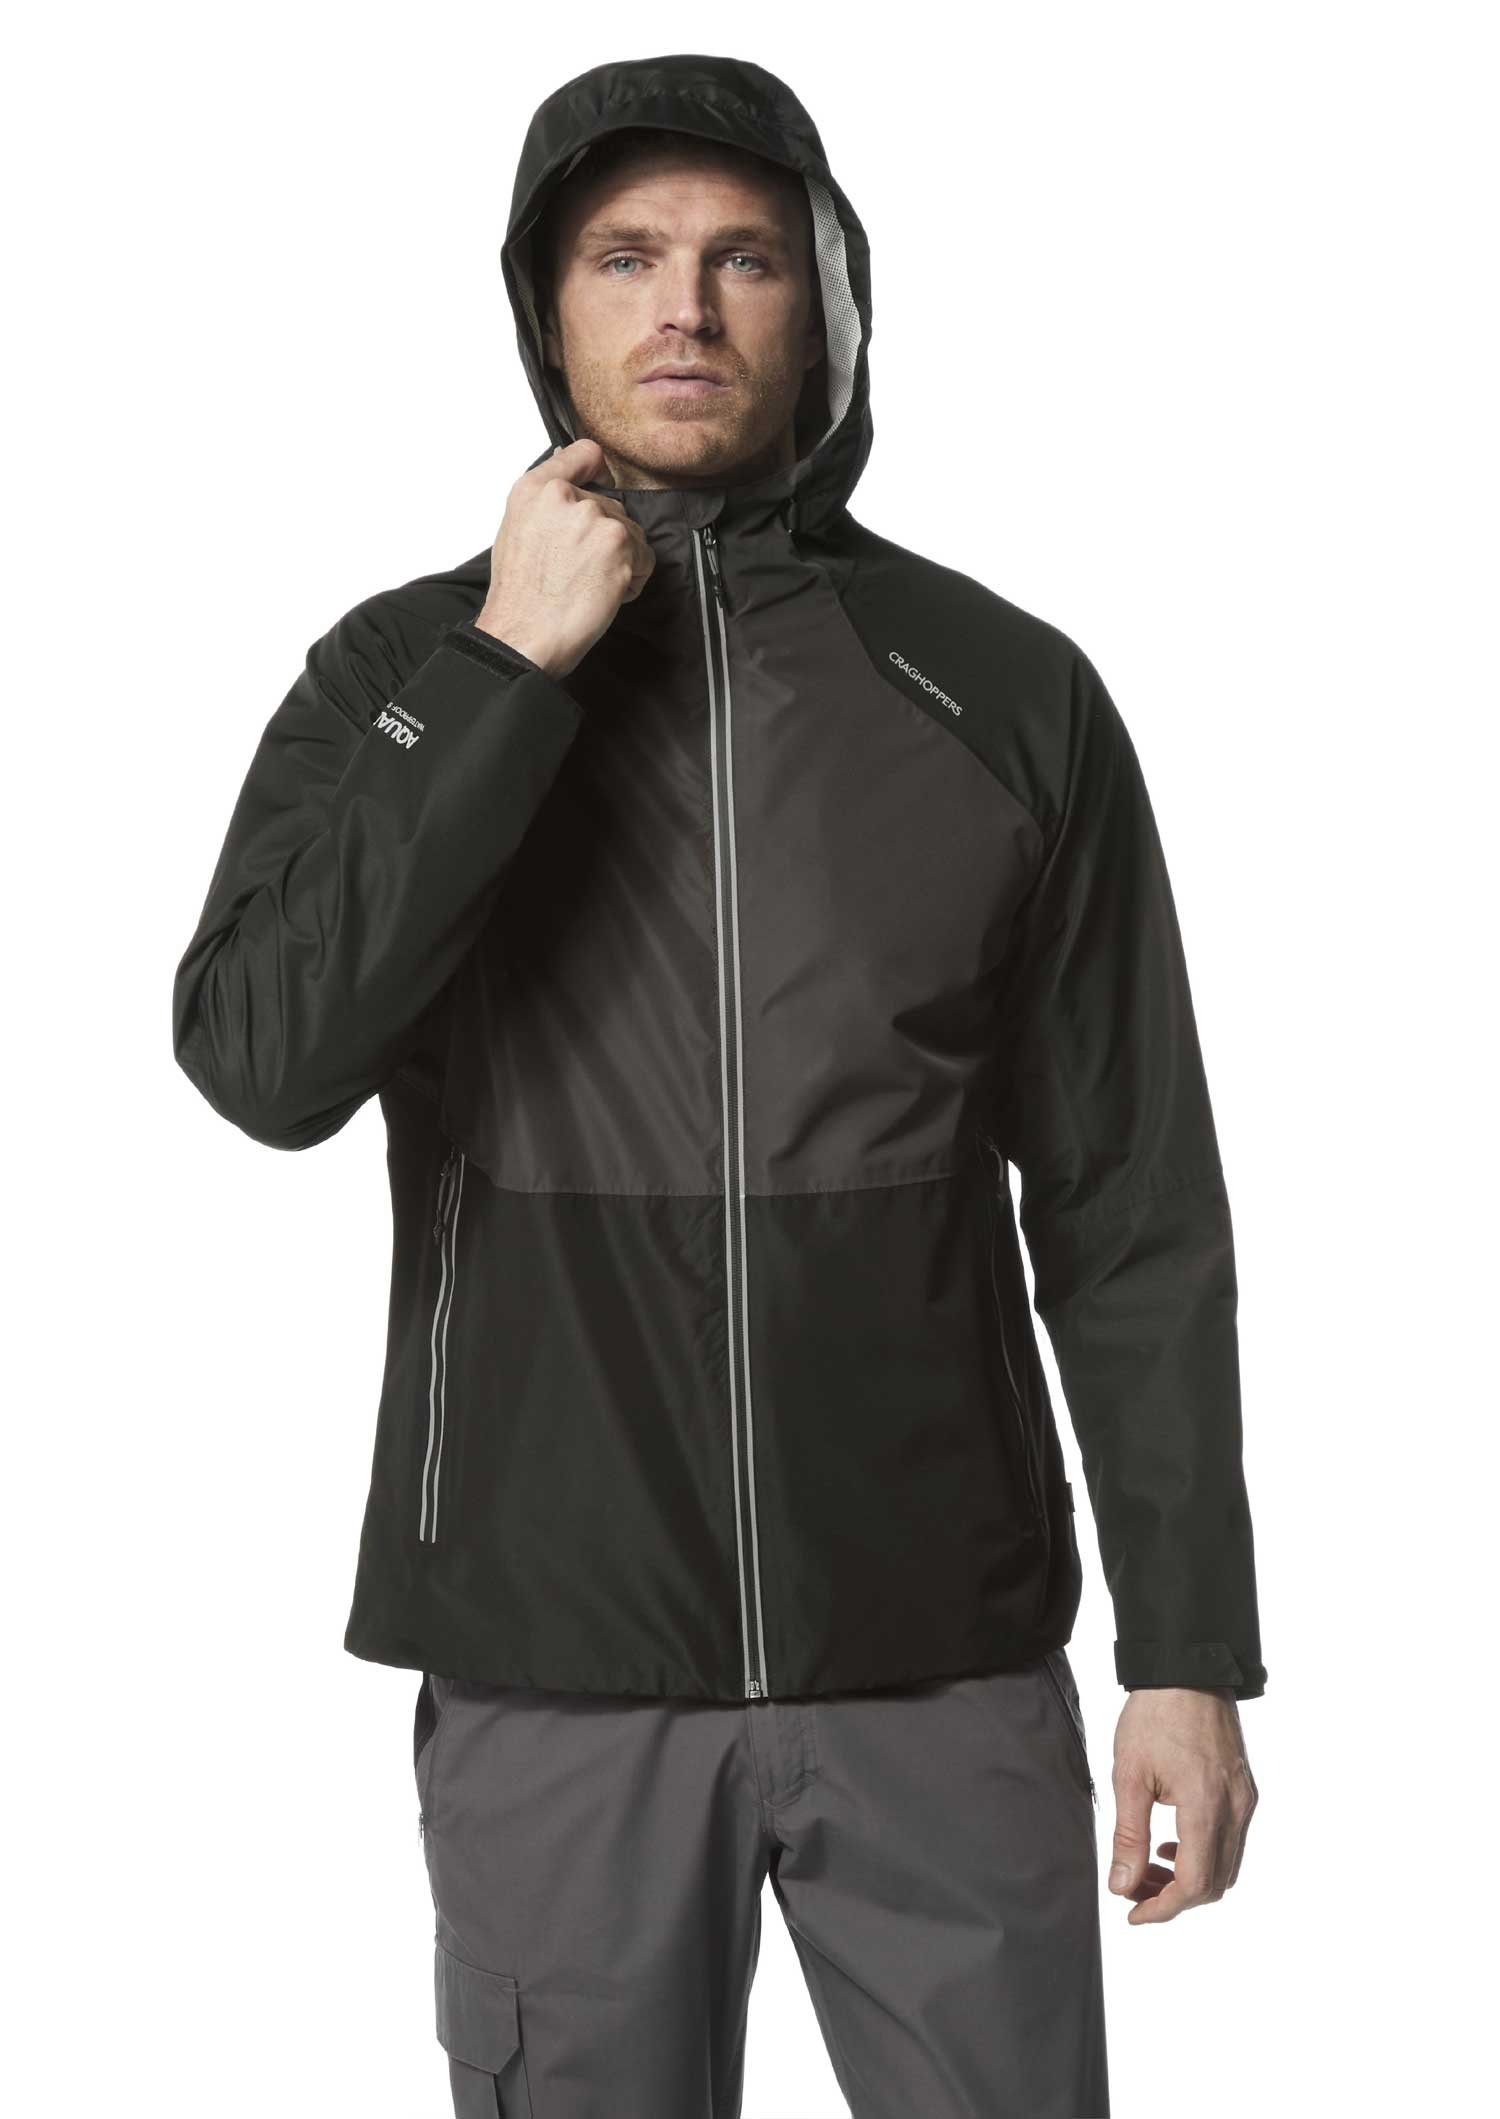 Man wears Horizon Waterproof Jacket by Craghoppers with the hood up